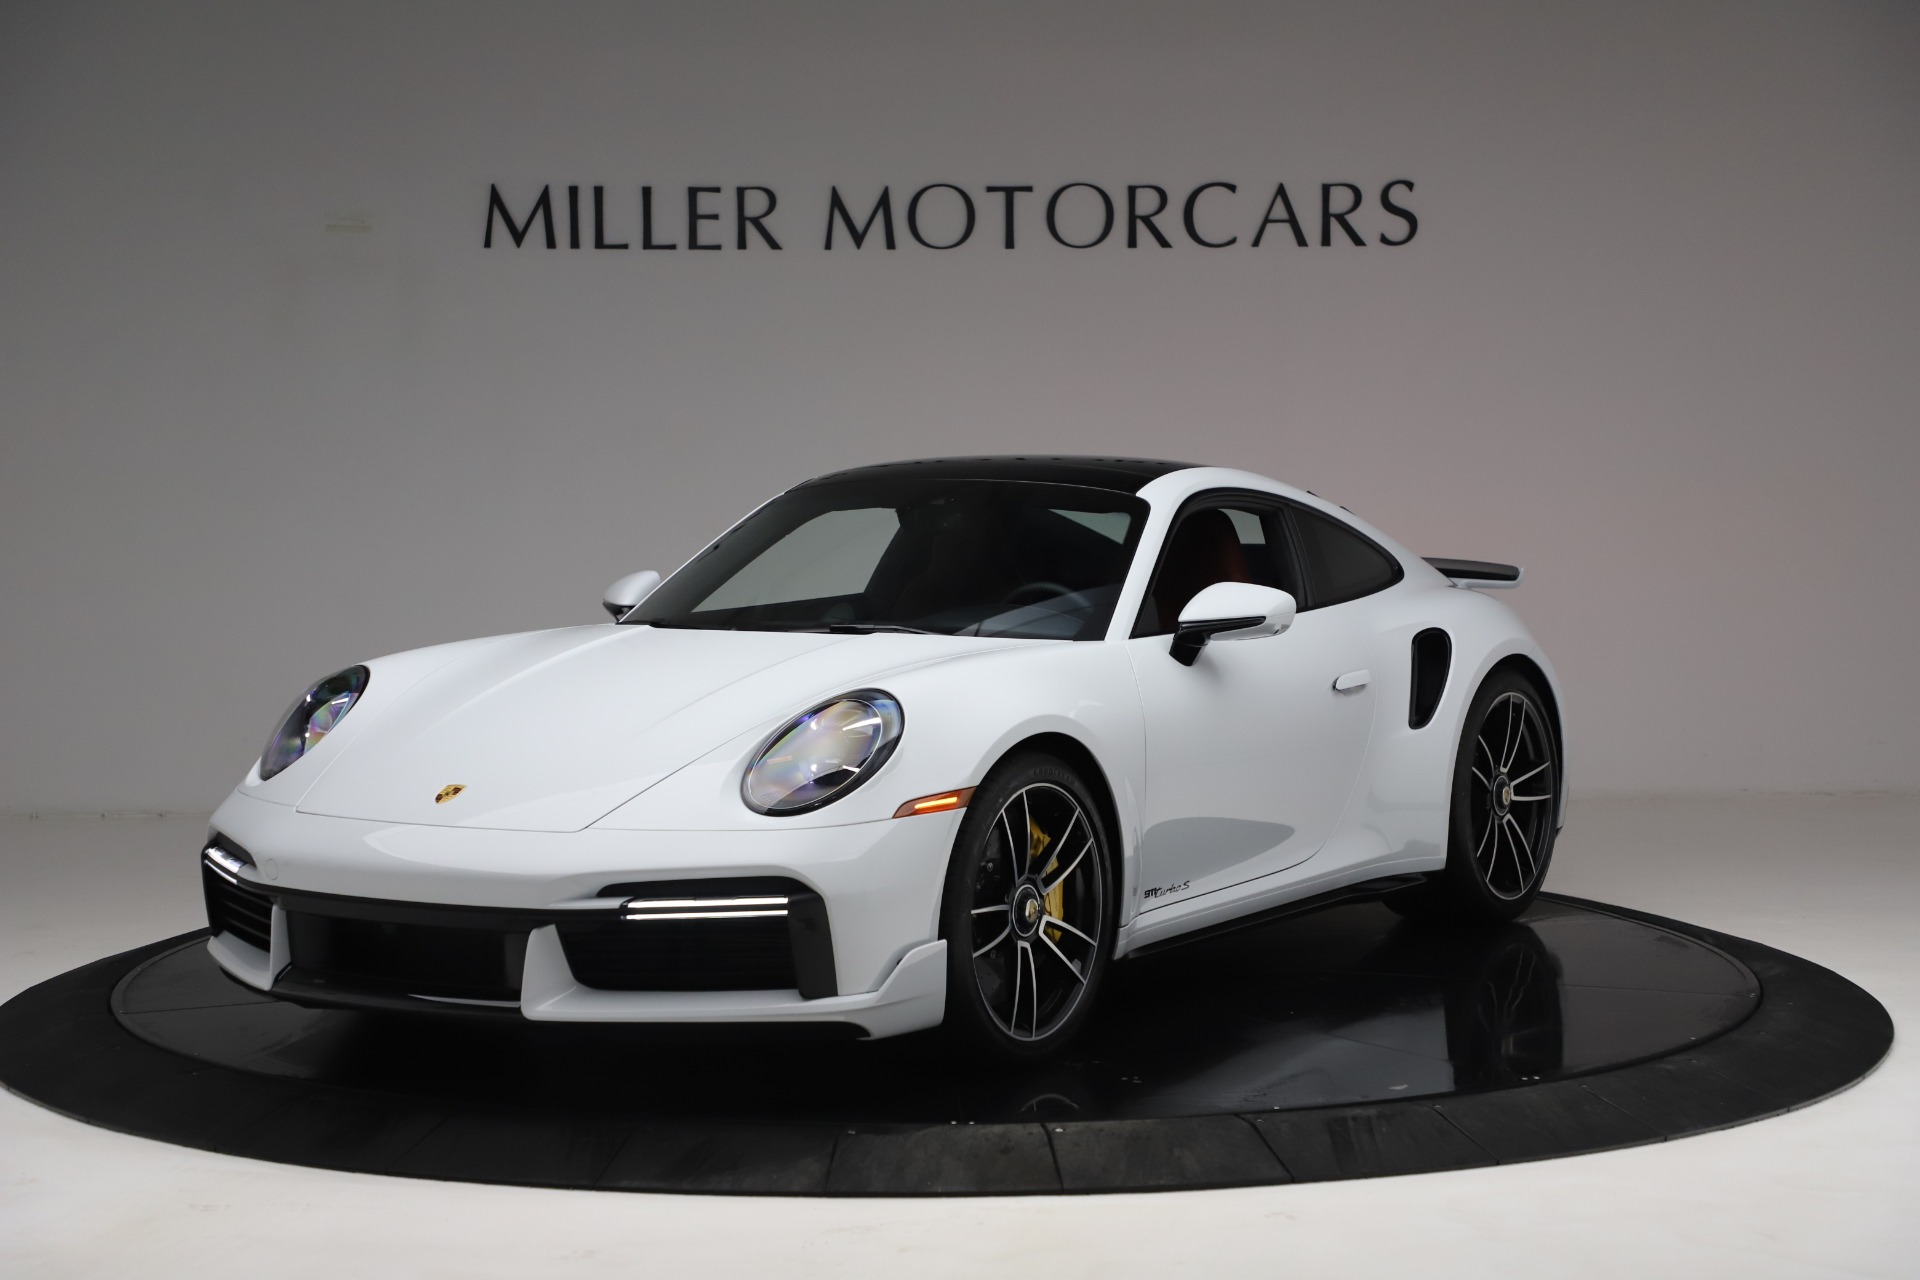 Used 2021 Porsche 911 Turbo S for sale $273,900 at Maserati of Greenwich in Greenwich CT 06830 1